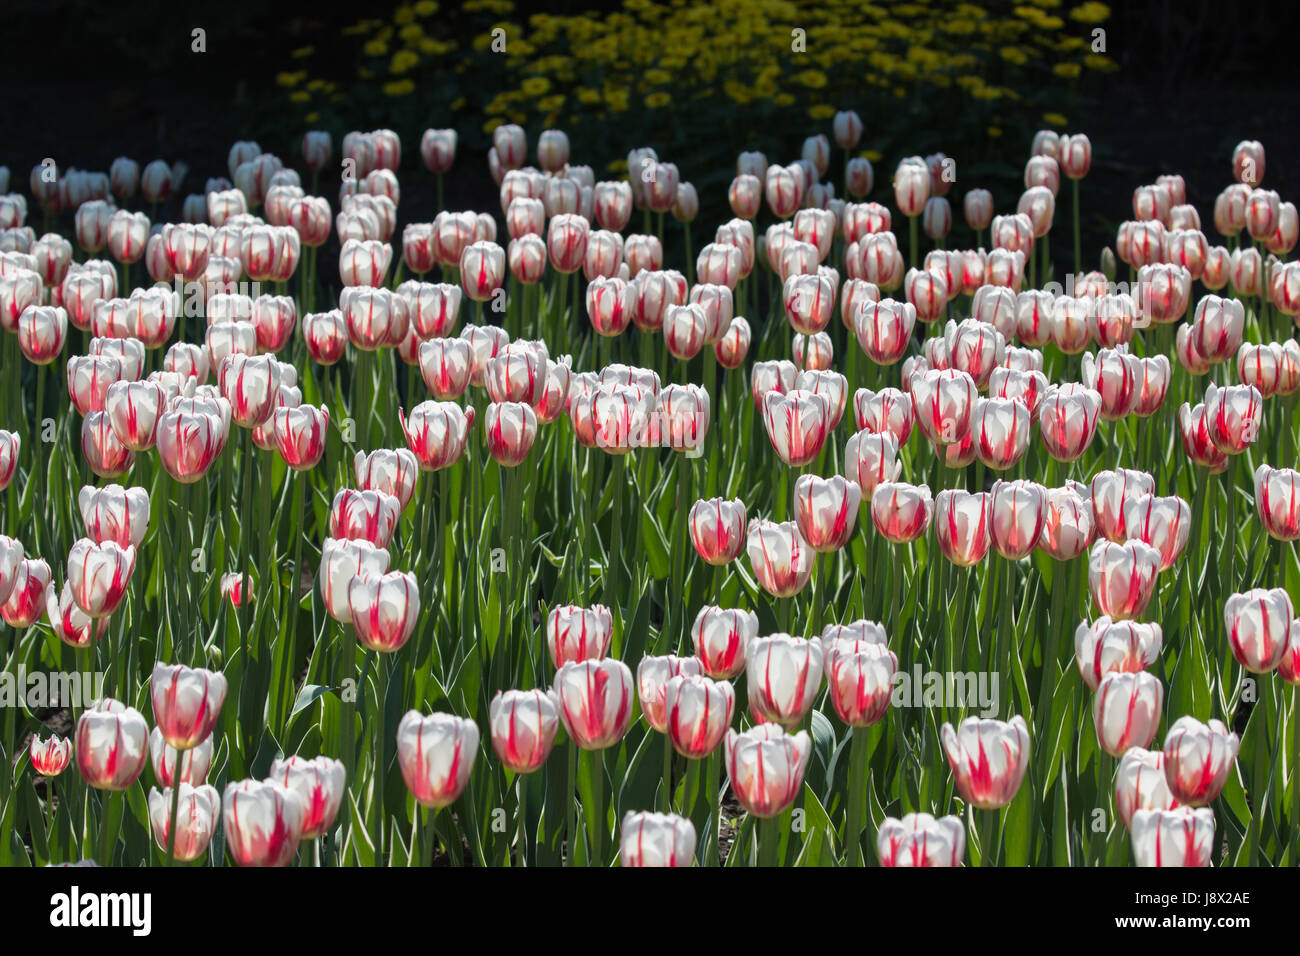 Canada 150 Tulips - Stock Image